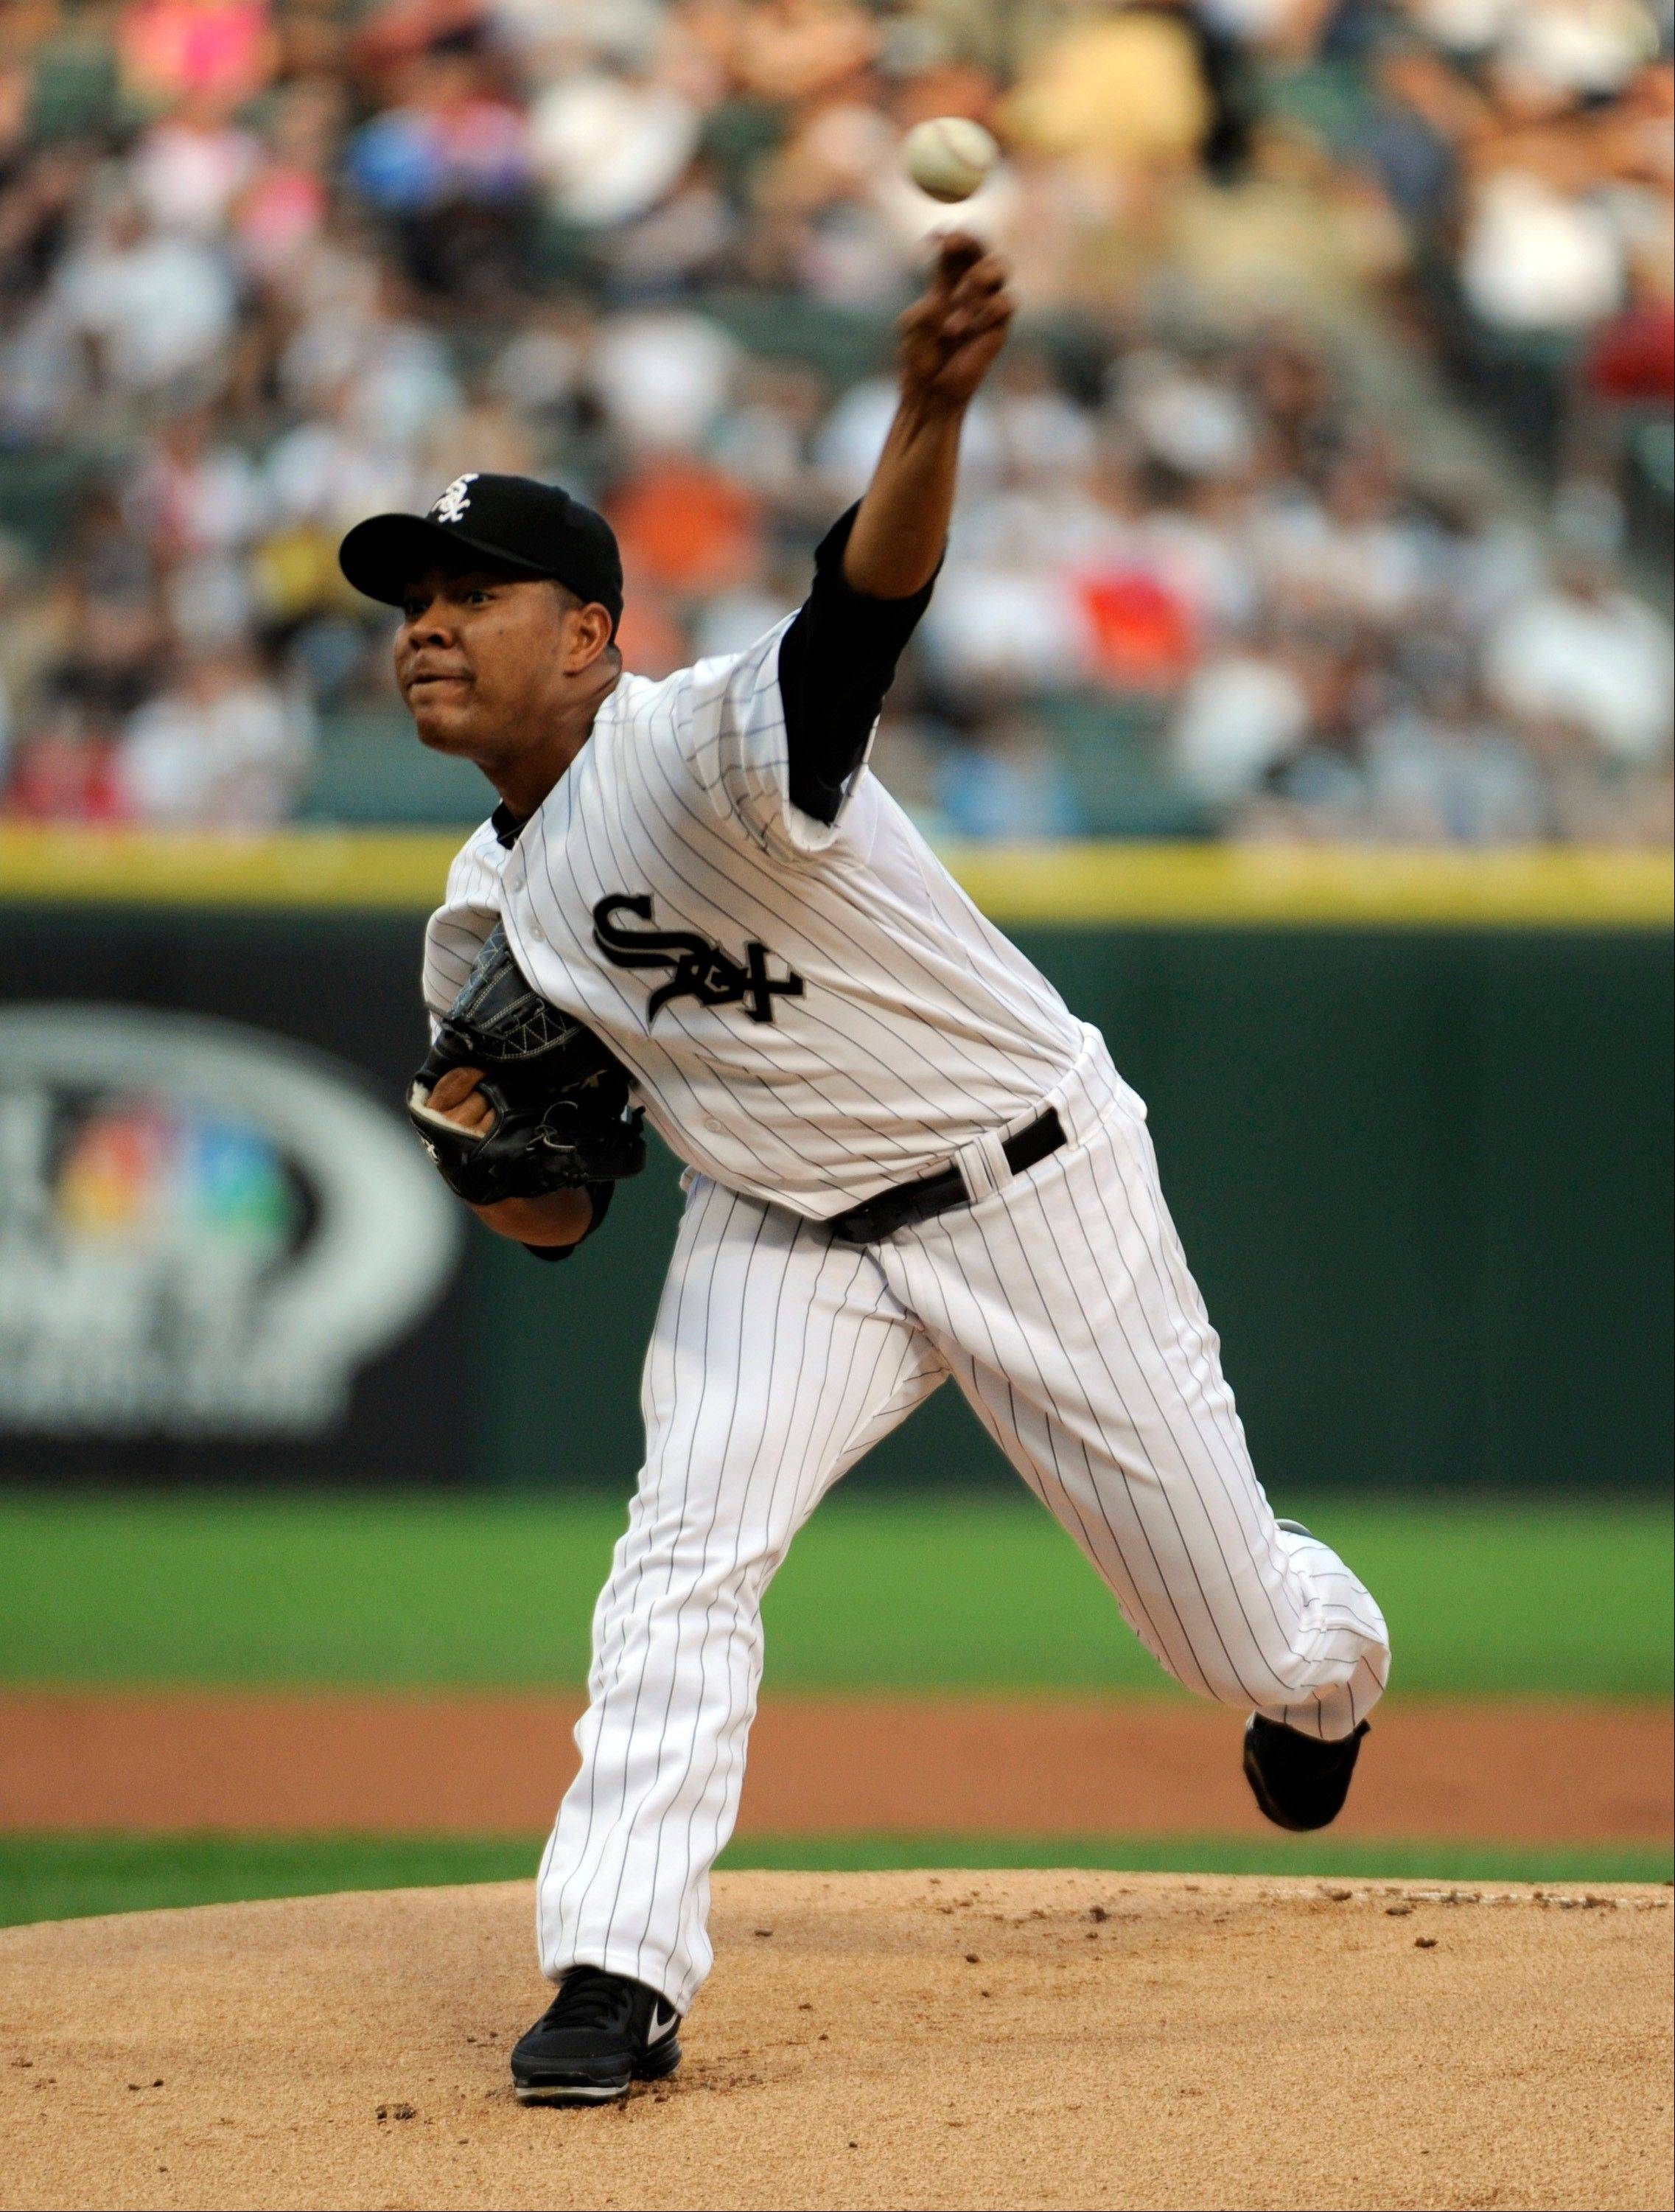 White Sox starter Jose Quintana works against the Red Sox on Tuesday at U.S. Cellular Field.